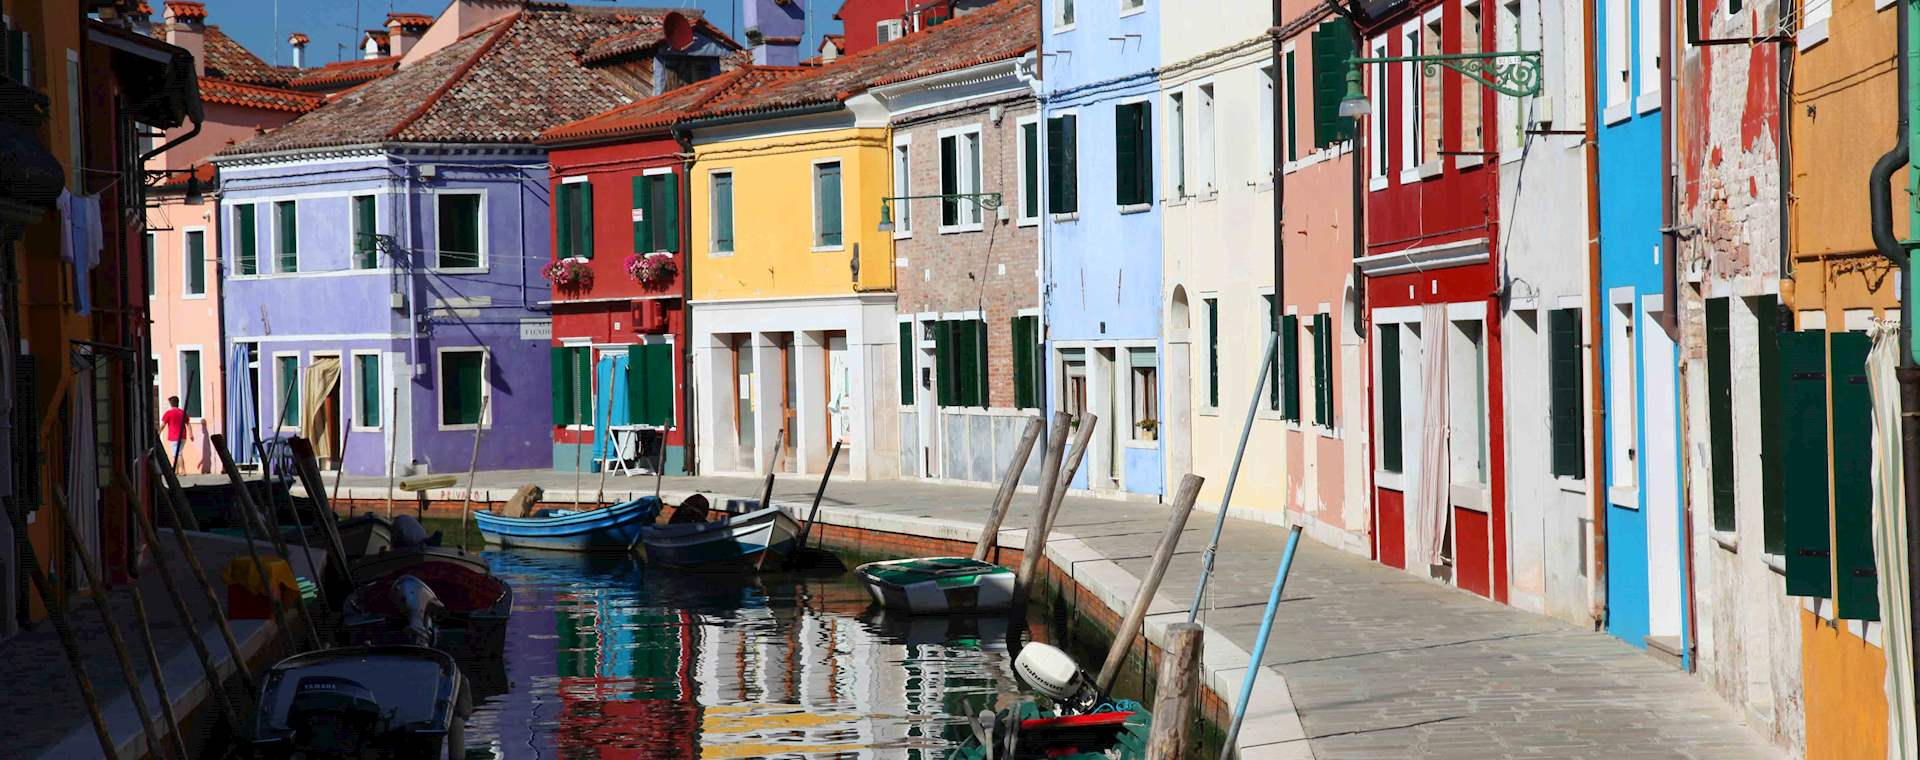 Venetian Islands Tour: Murano Glassblowing & Burano Lacemaking